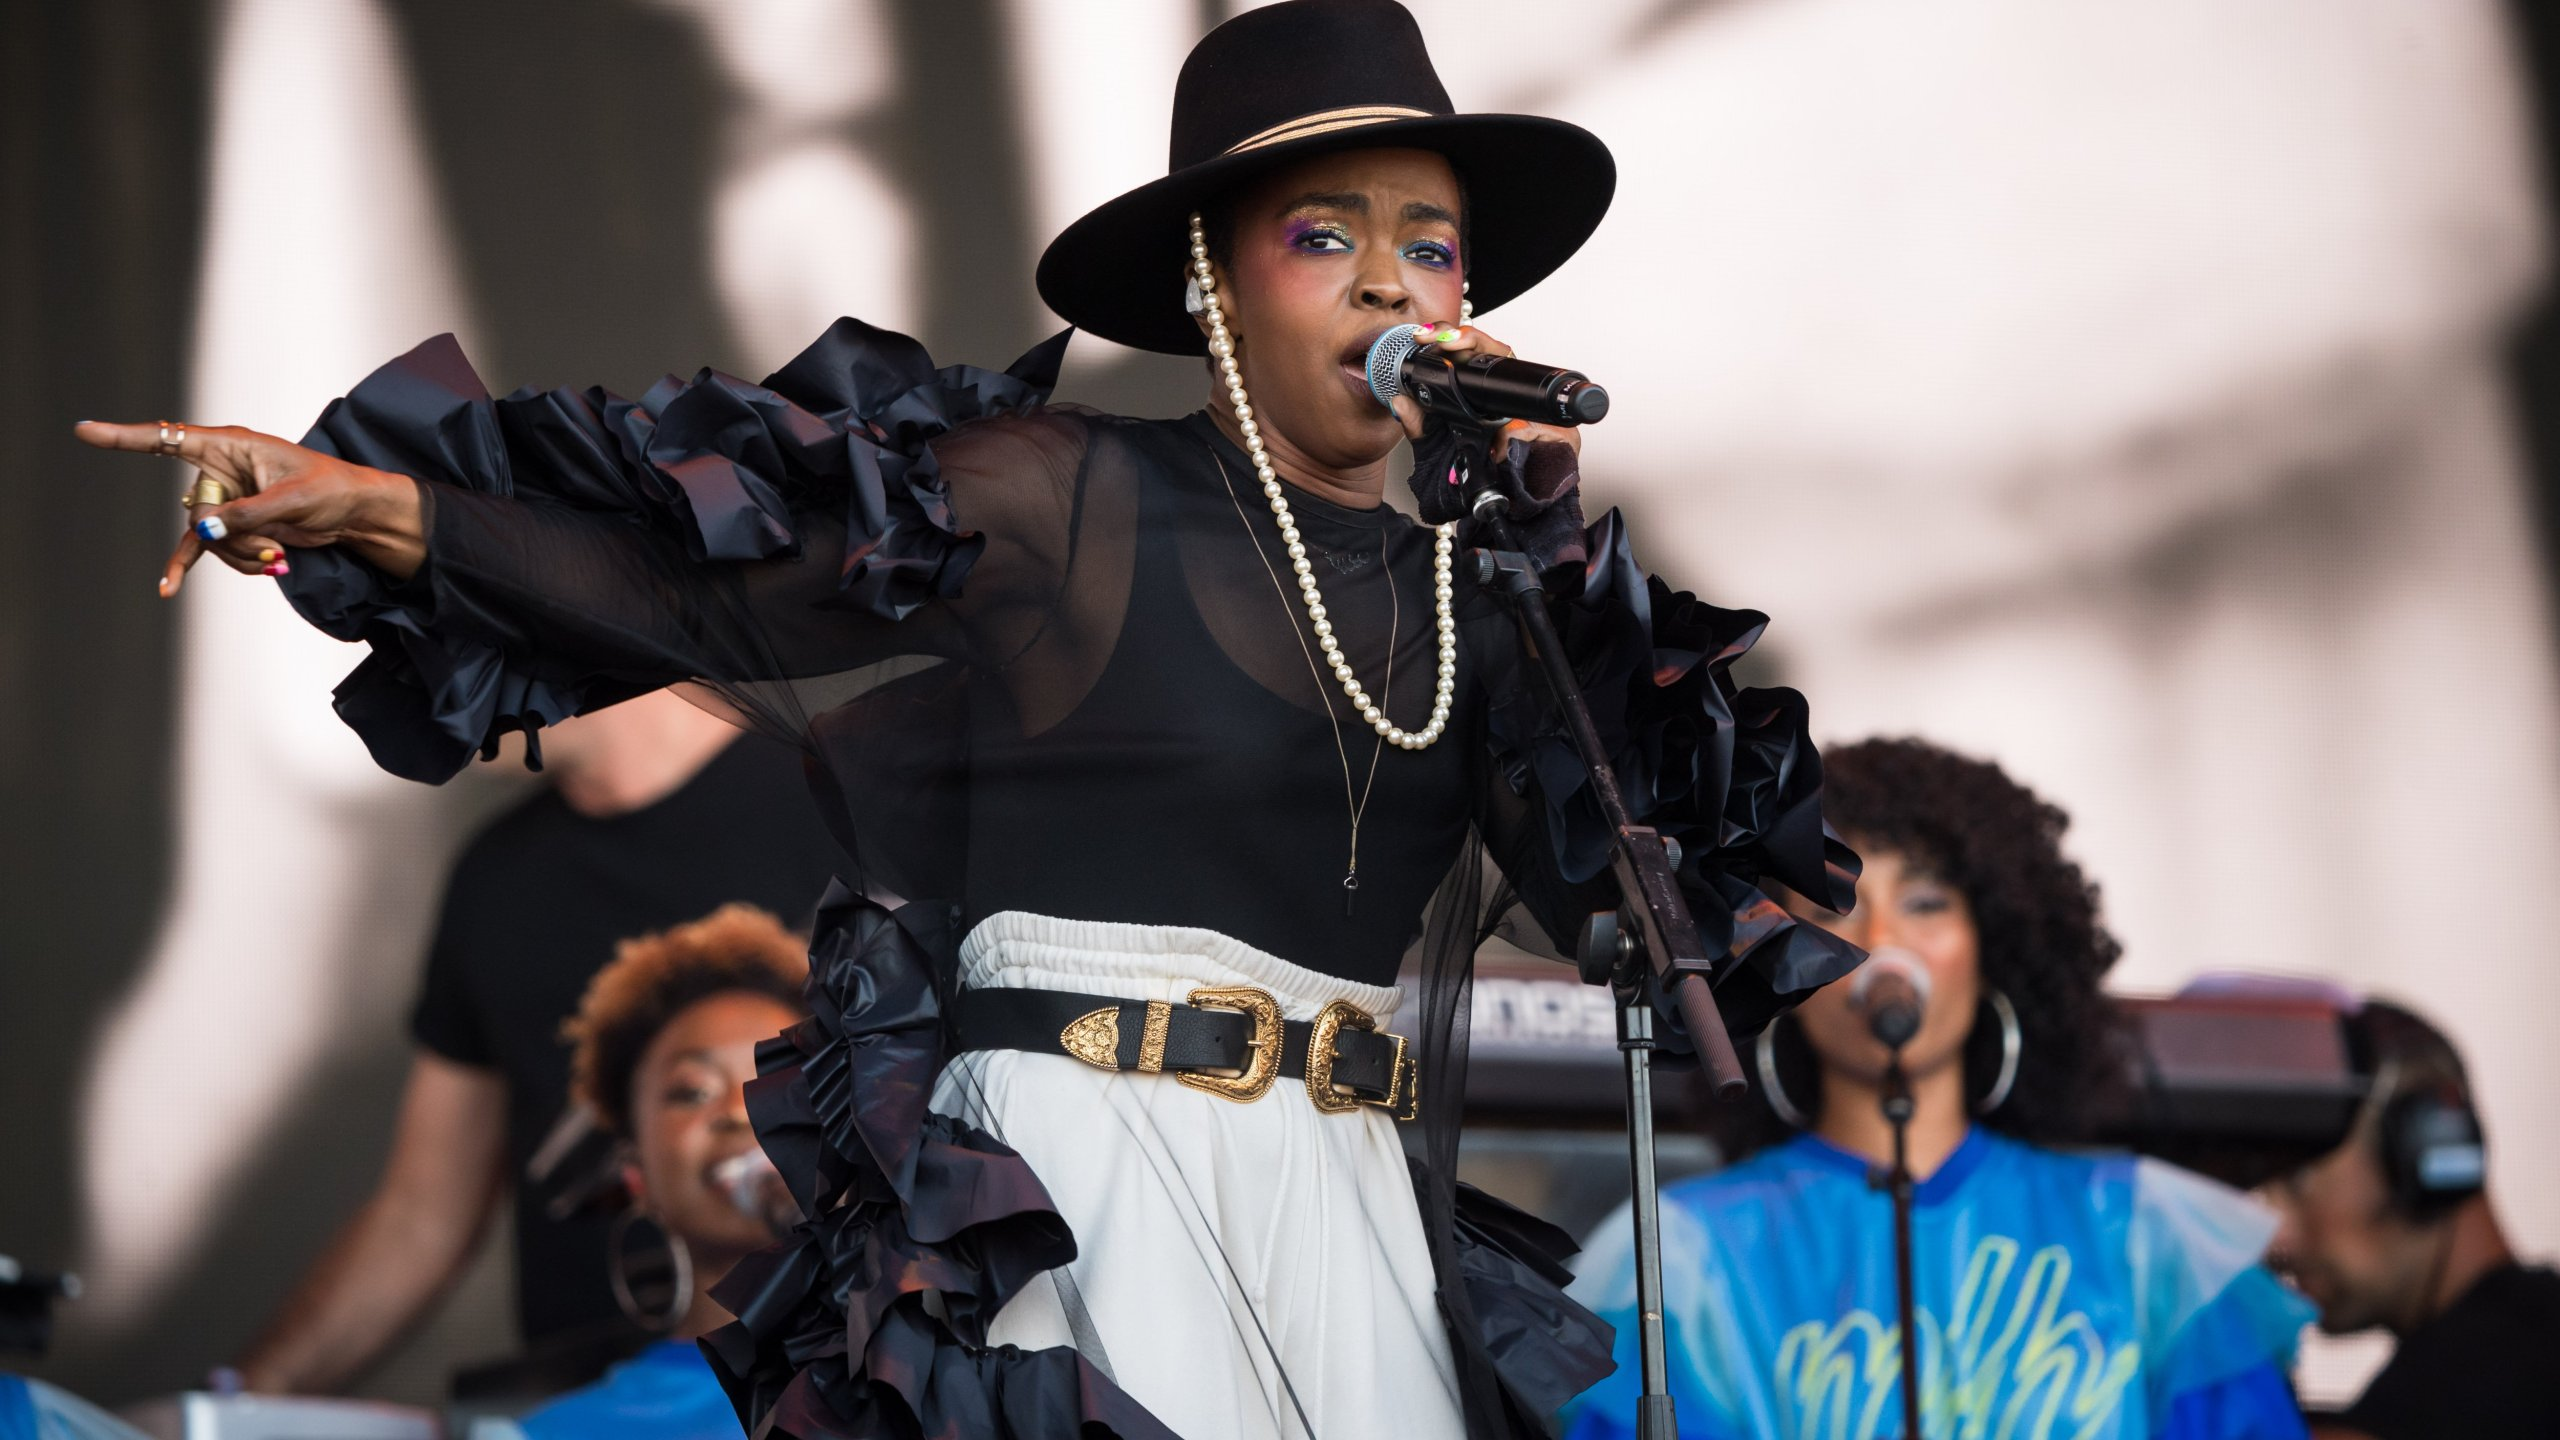 Lauryn Hill performs on stage at the Glastonbury Festival at Worthy Farm, Pilton on June 28, 2019 in England. (Credit: Ian Gavan/Getty Images)